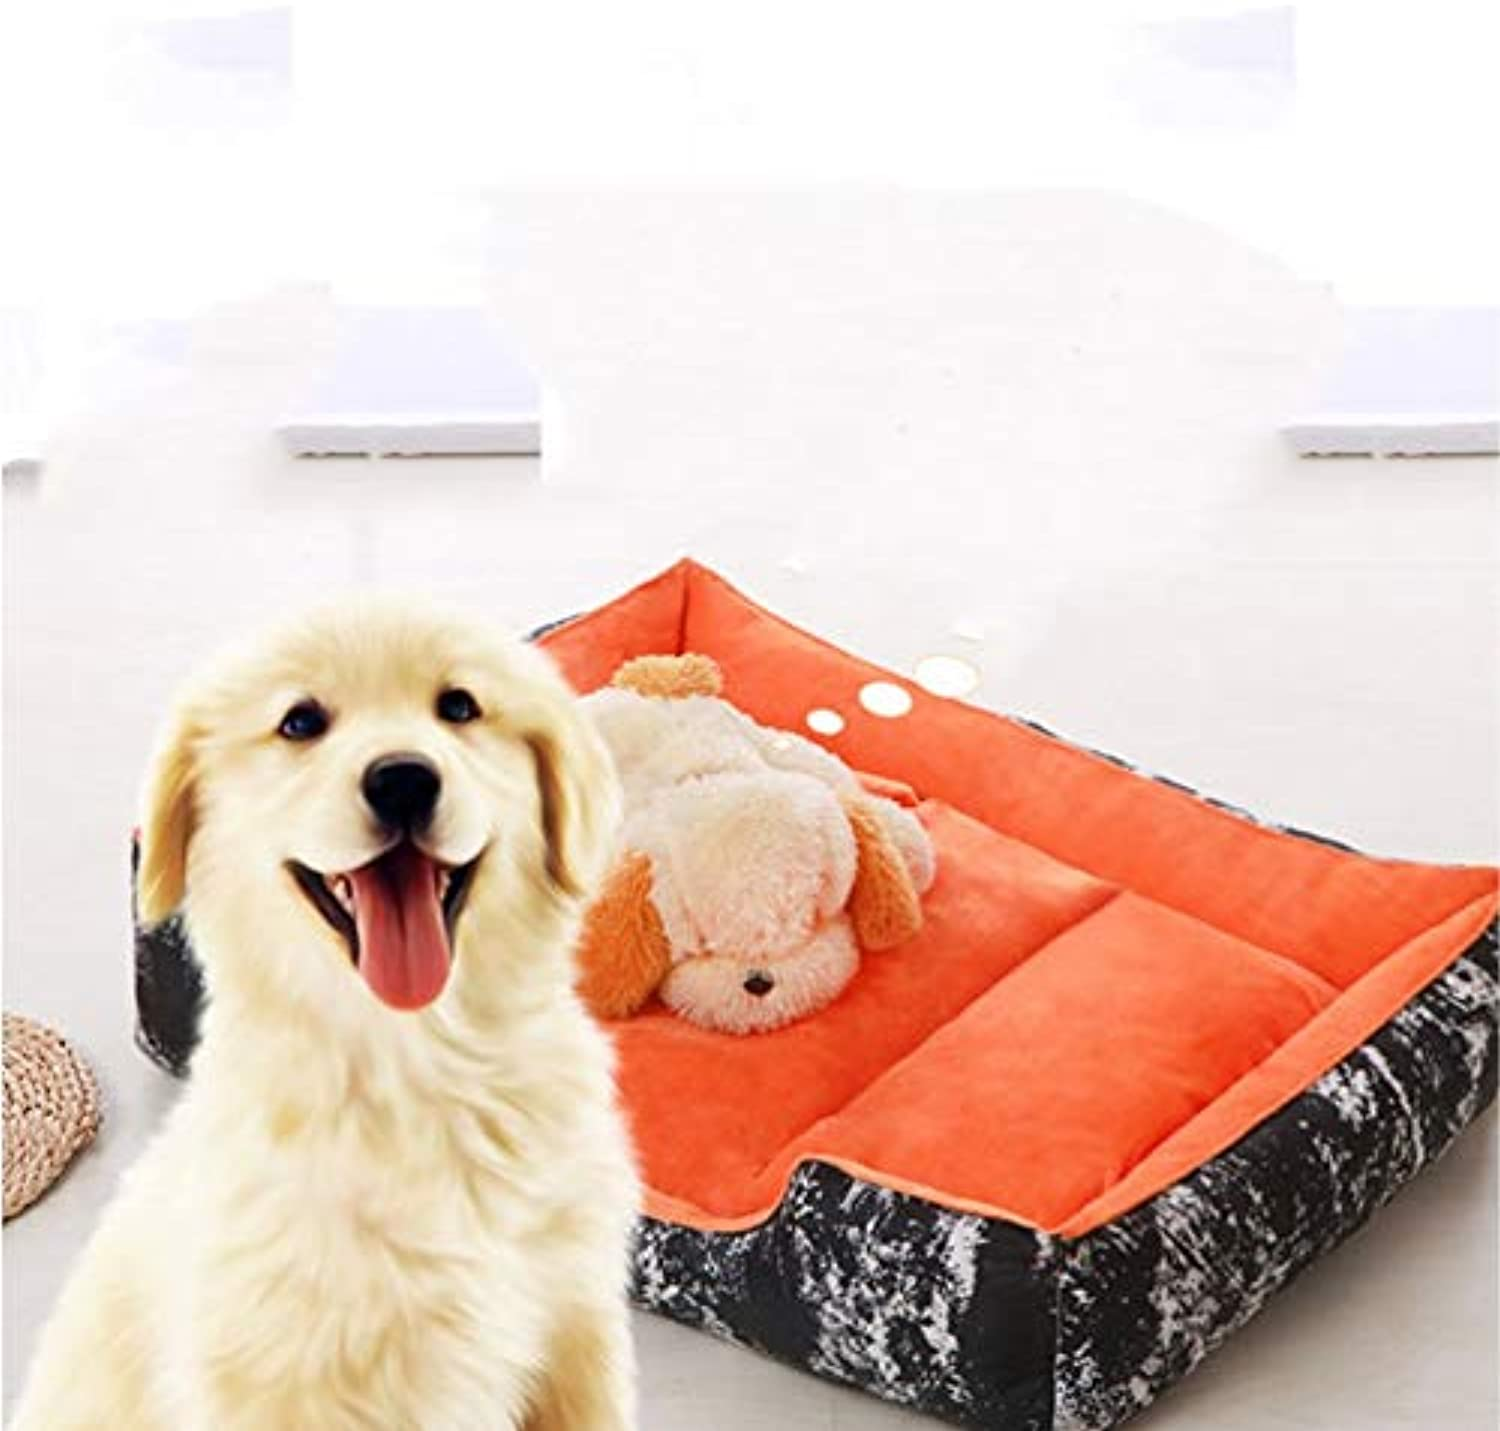 GZDXHN Kennel Fully Removable Pet Mats Pet Bed Small Medium And Large Four Seasons Universal Waterproof Is Not Afraid To Bite Pet Mat 0